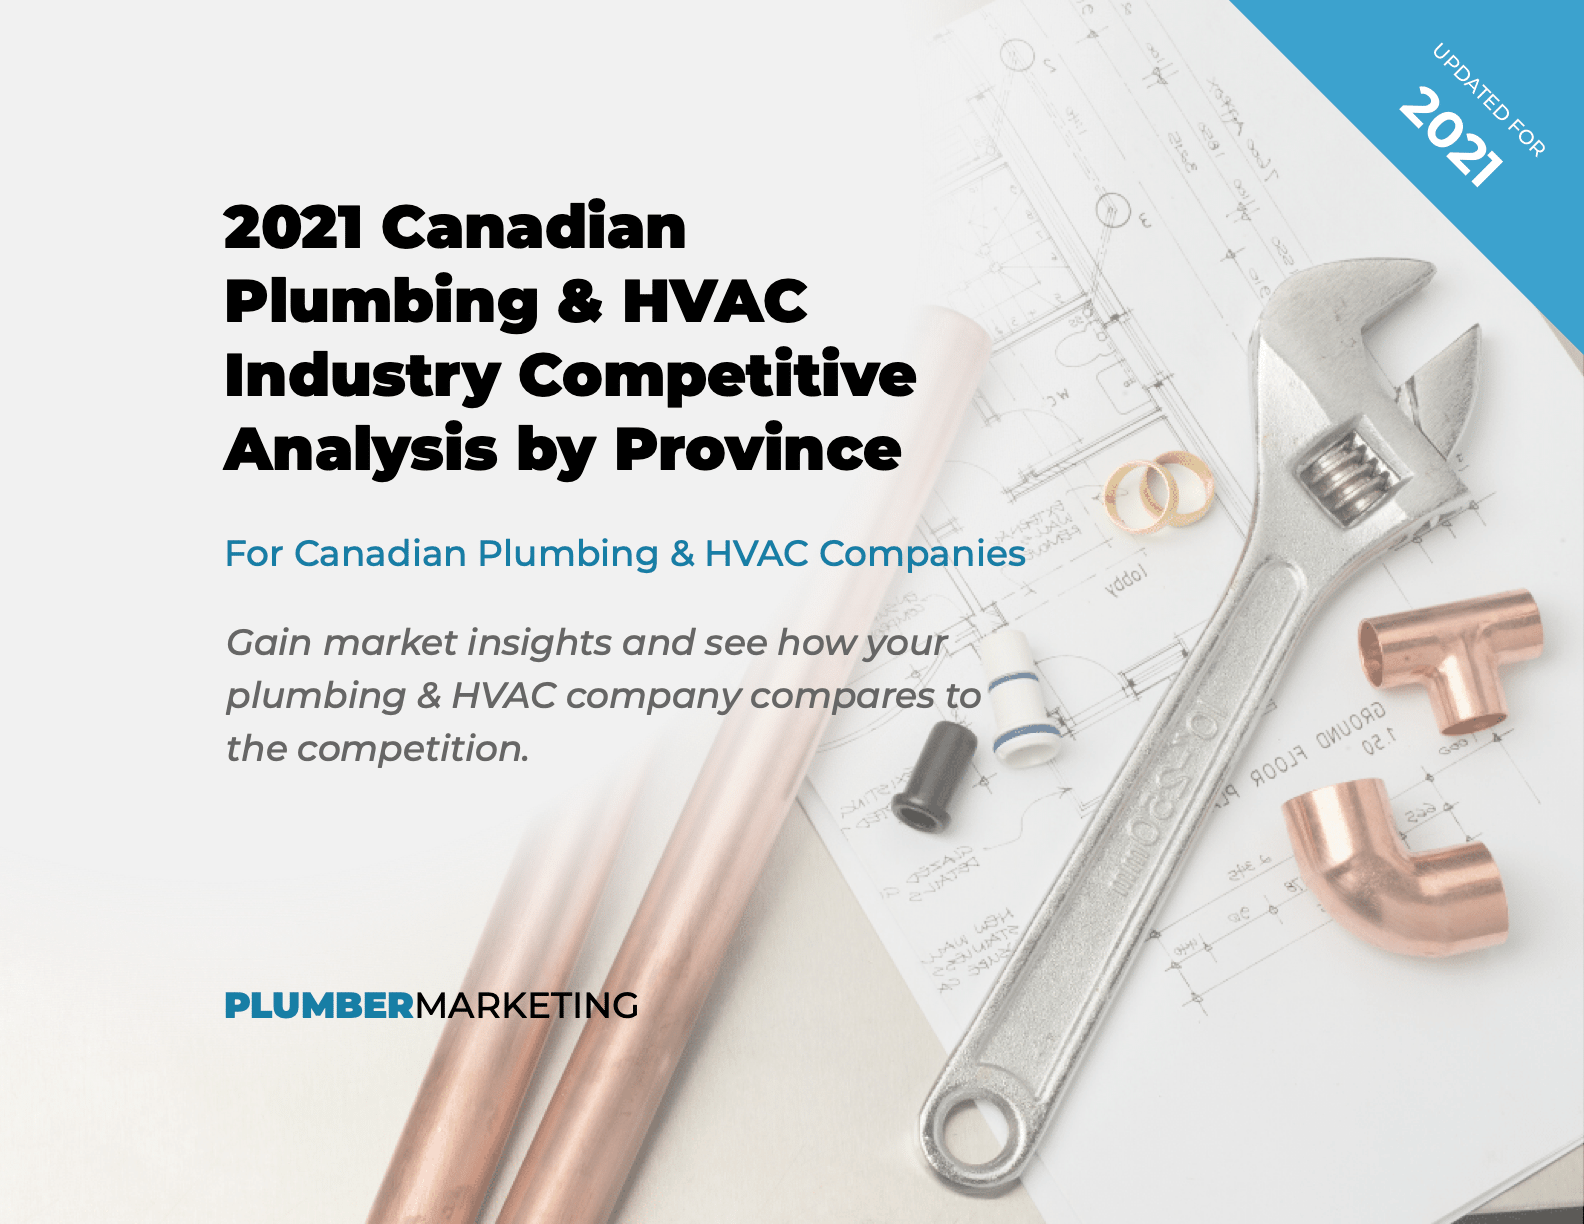 2021 Canadian Plumbing & HVAC Industry Competitive Analysis By Province